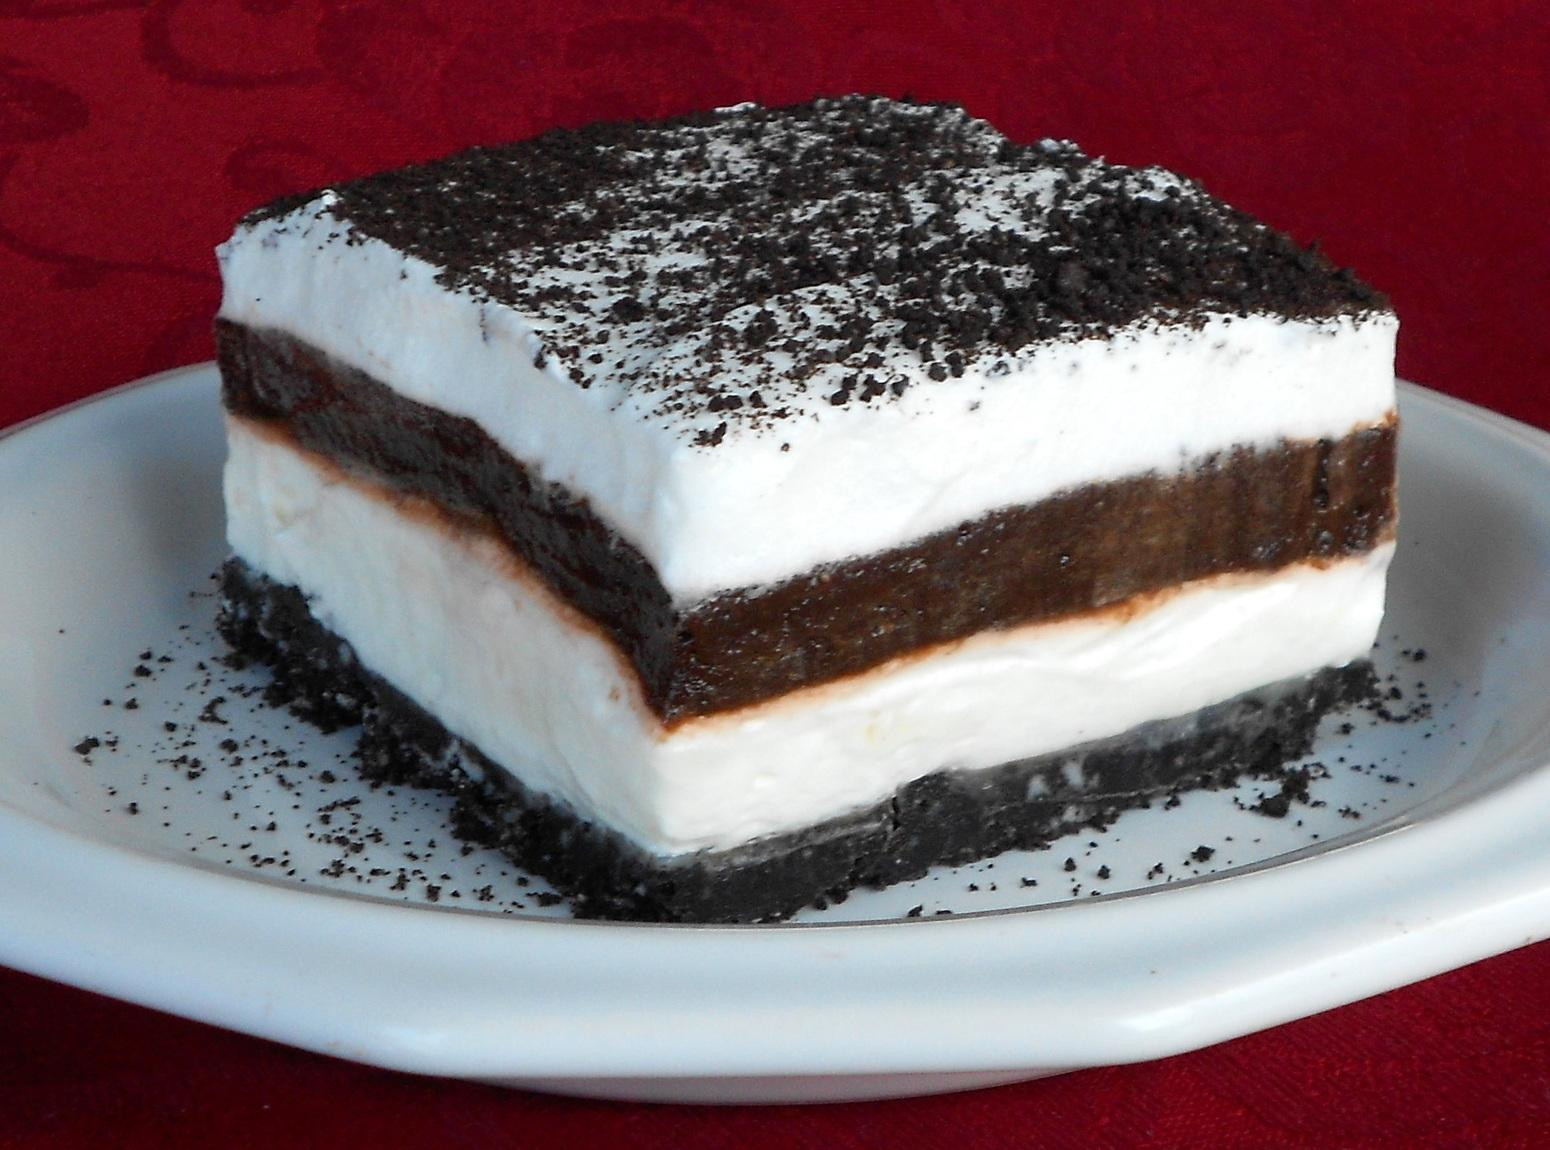 Oreo Dessert Recipes  Layered Oreo Dessert Recipe